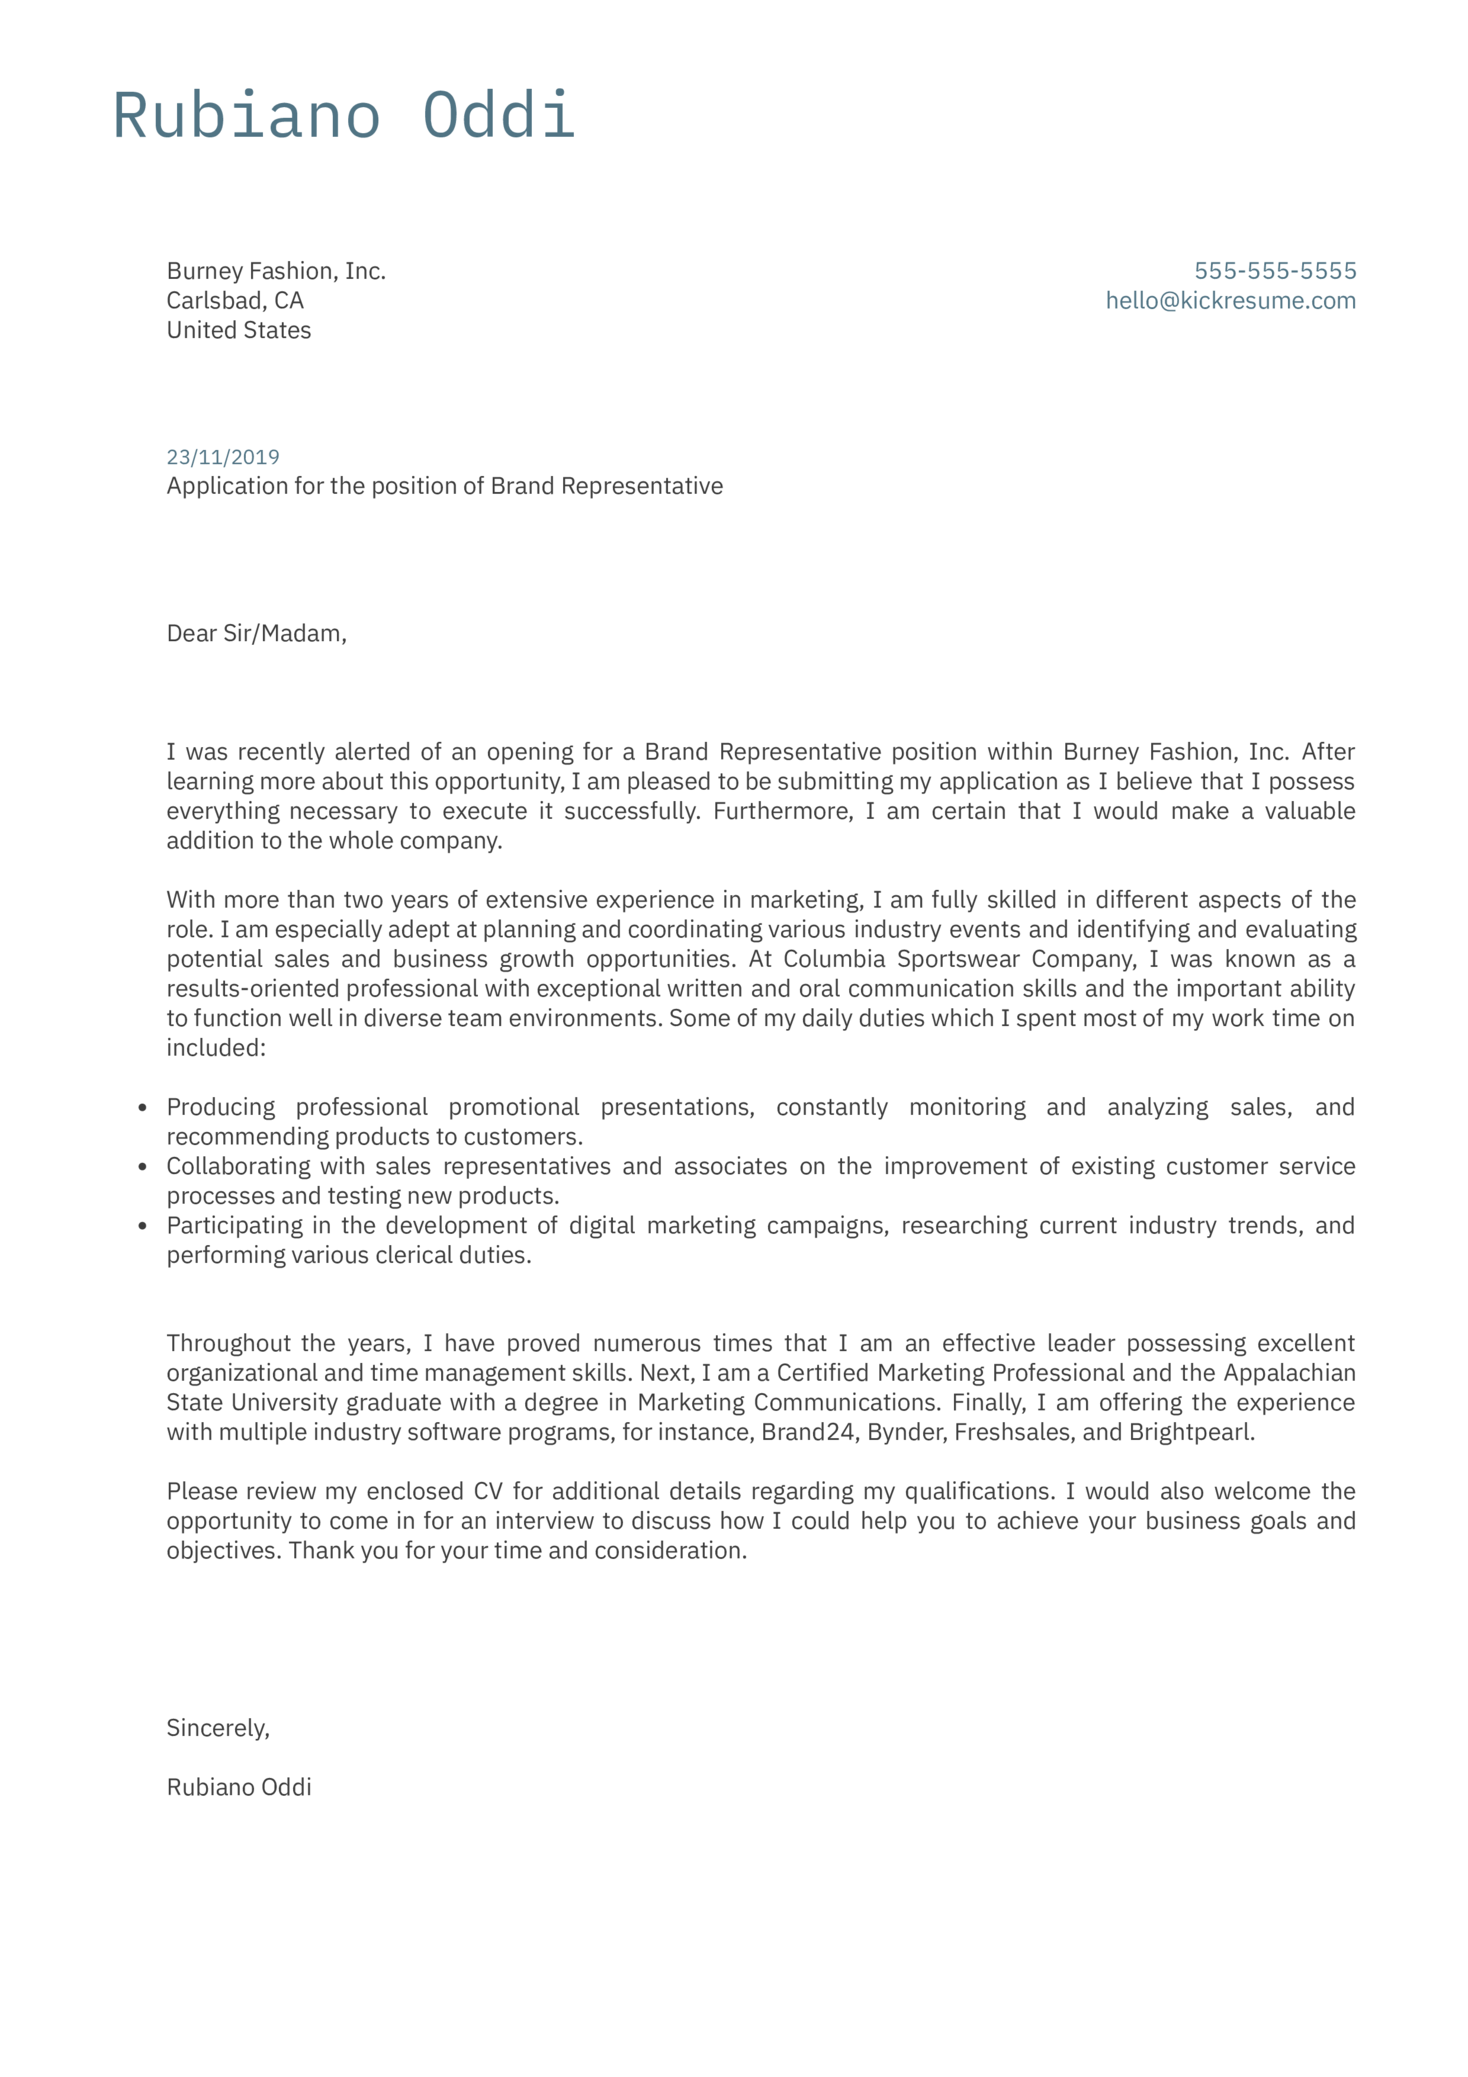 cover letter examples by real people  brand representative cover letter example